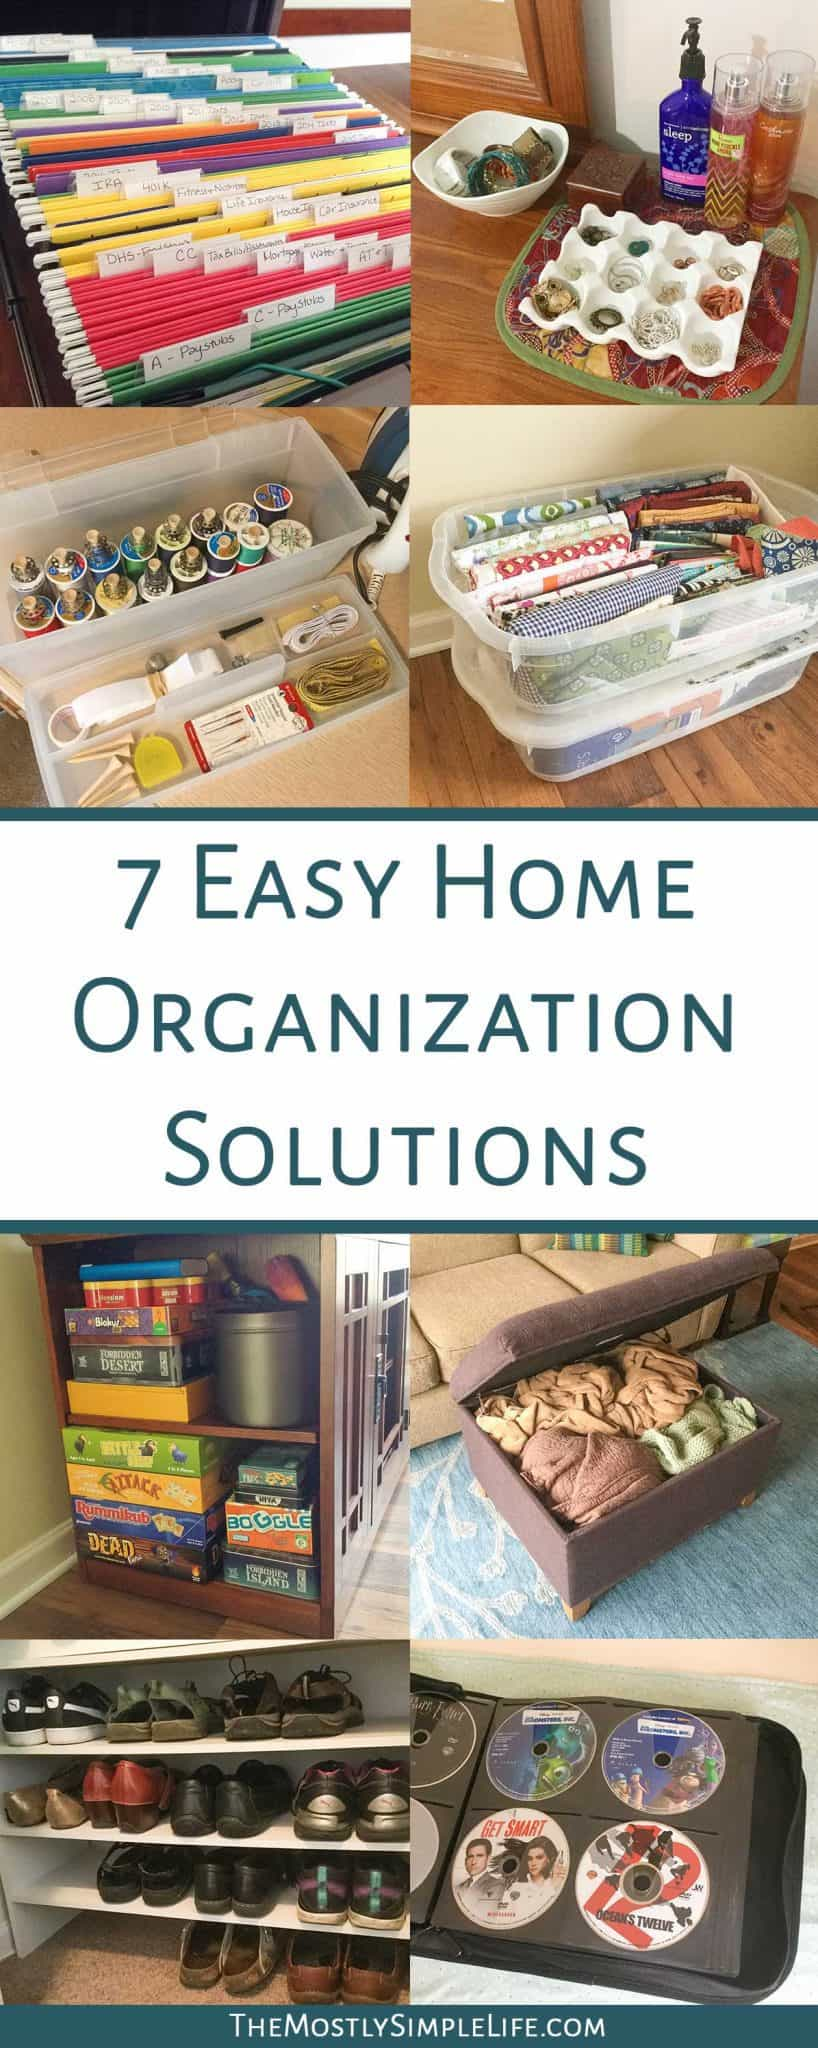 Organization Ideas For The Home | So Many Good Tips For Keeping Sewing And  Craft Stuff